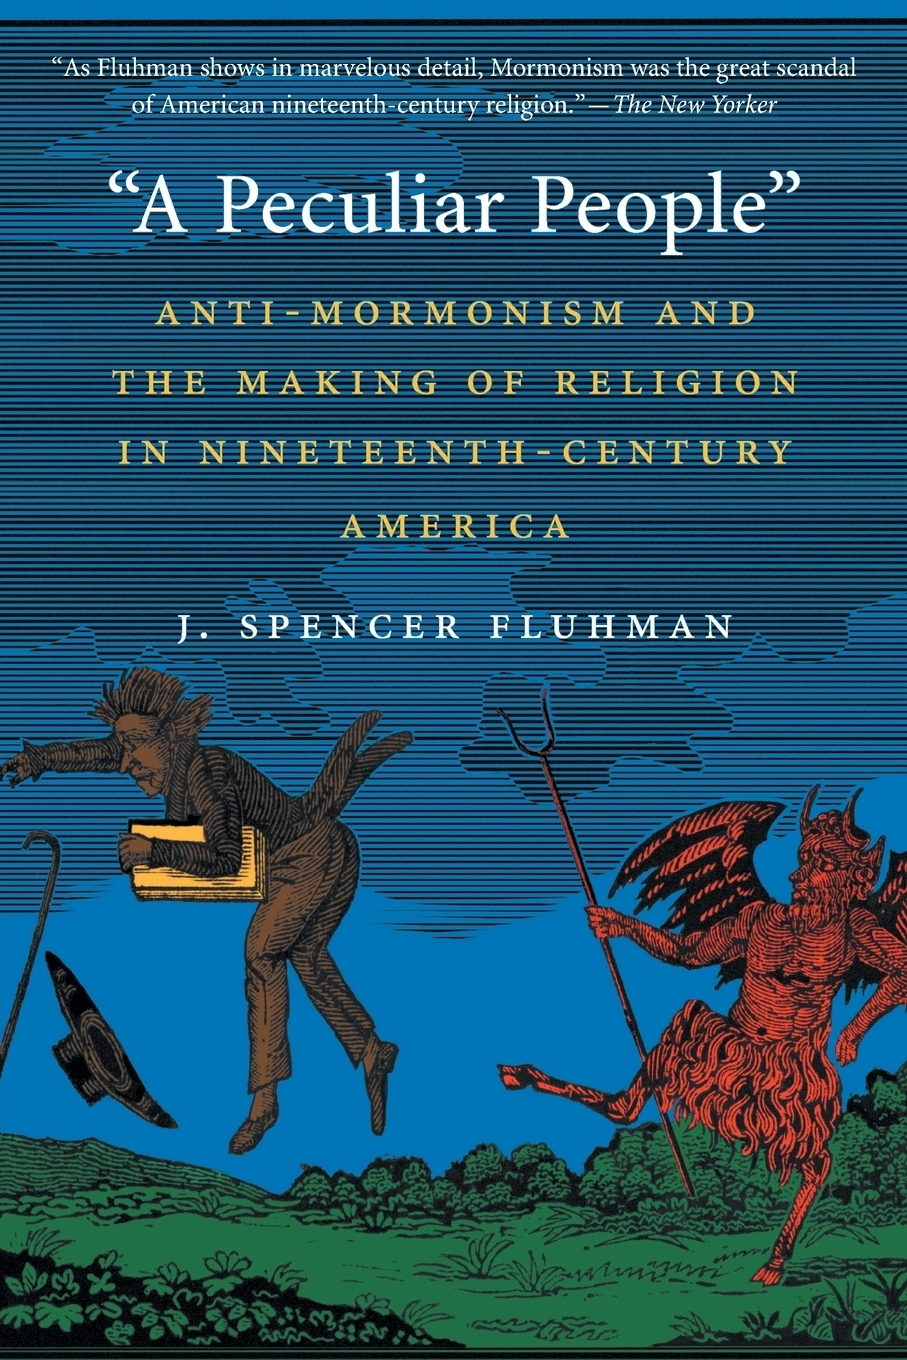 """J. Spencer Fluhman. """"A Peculiar People"""". Anti-Mormonism and the Making of Religion in Nineteenth-Century America"""